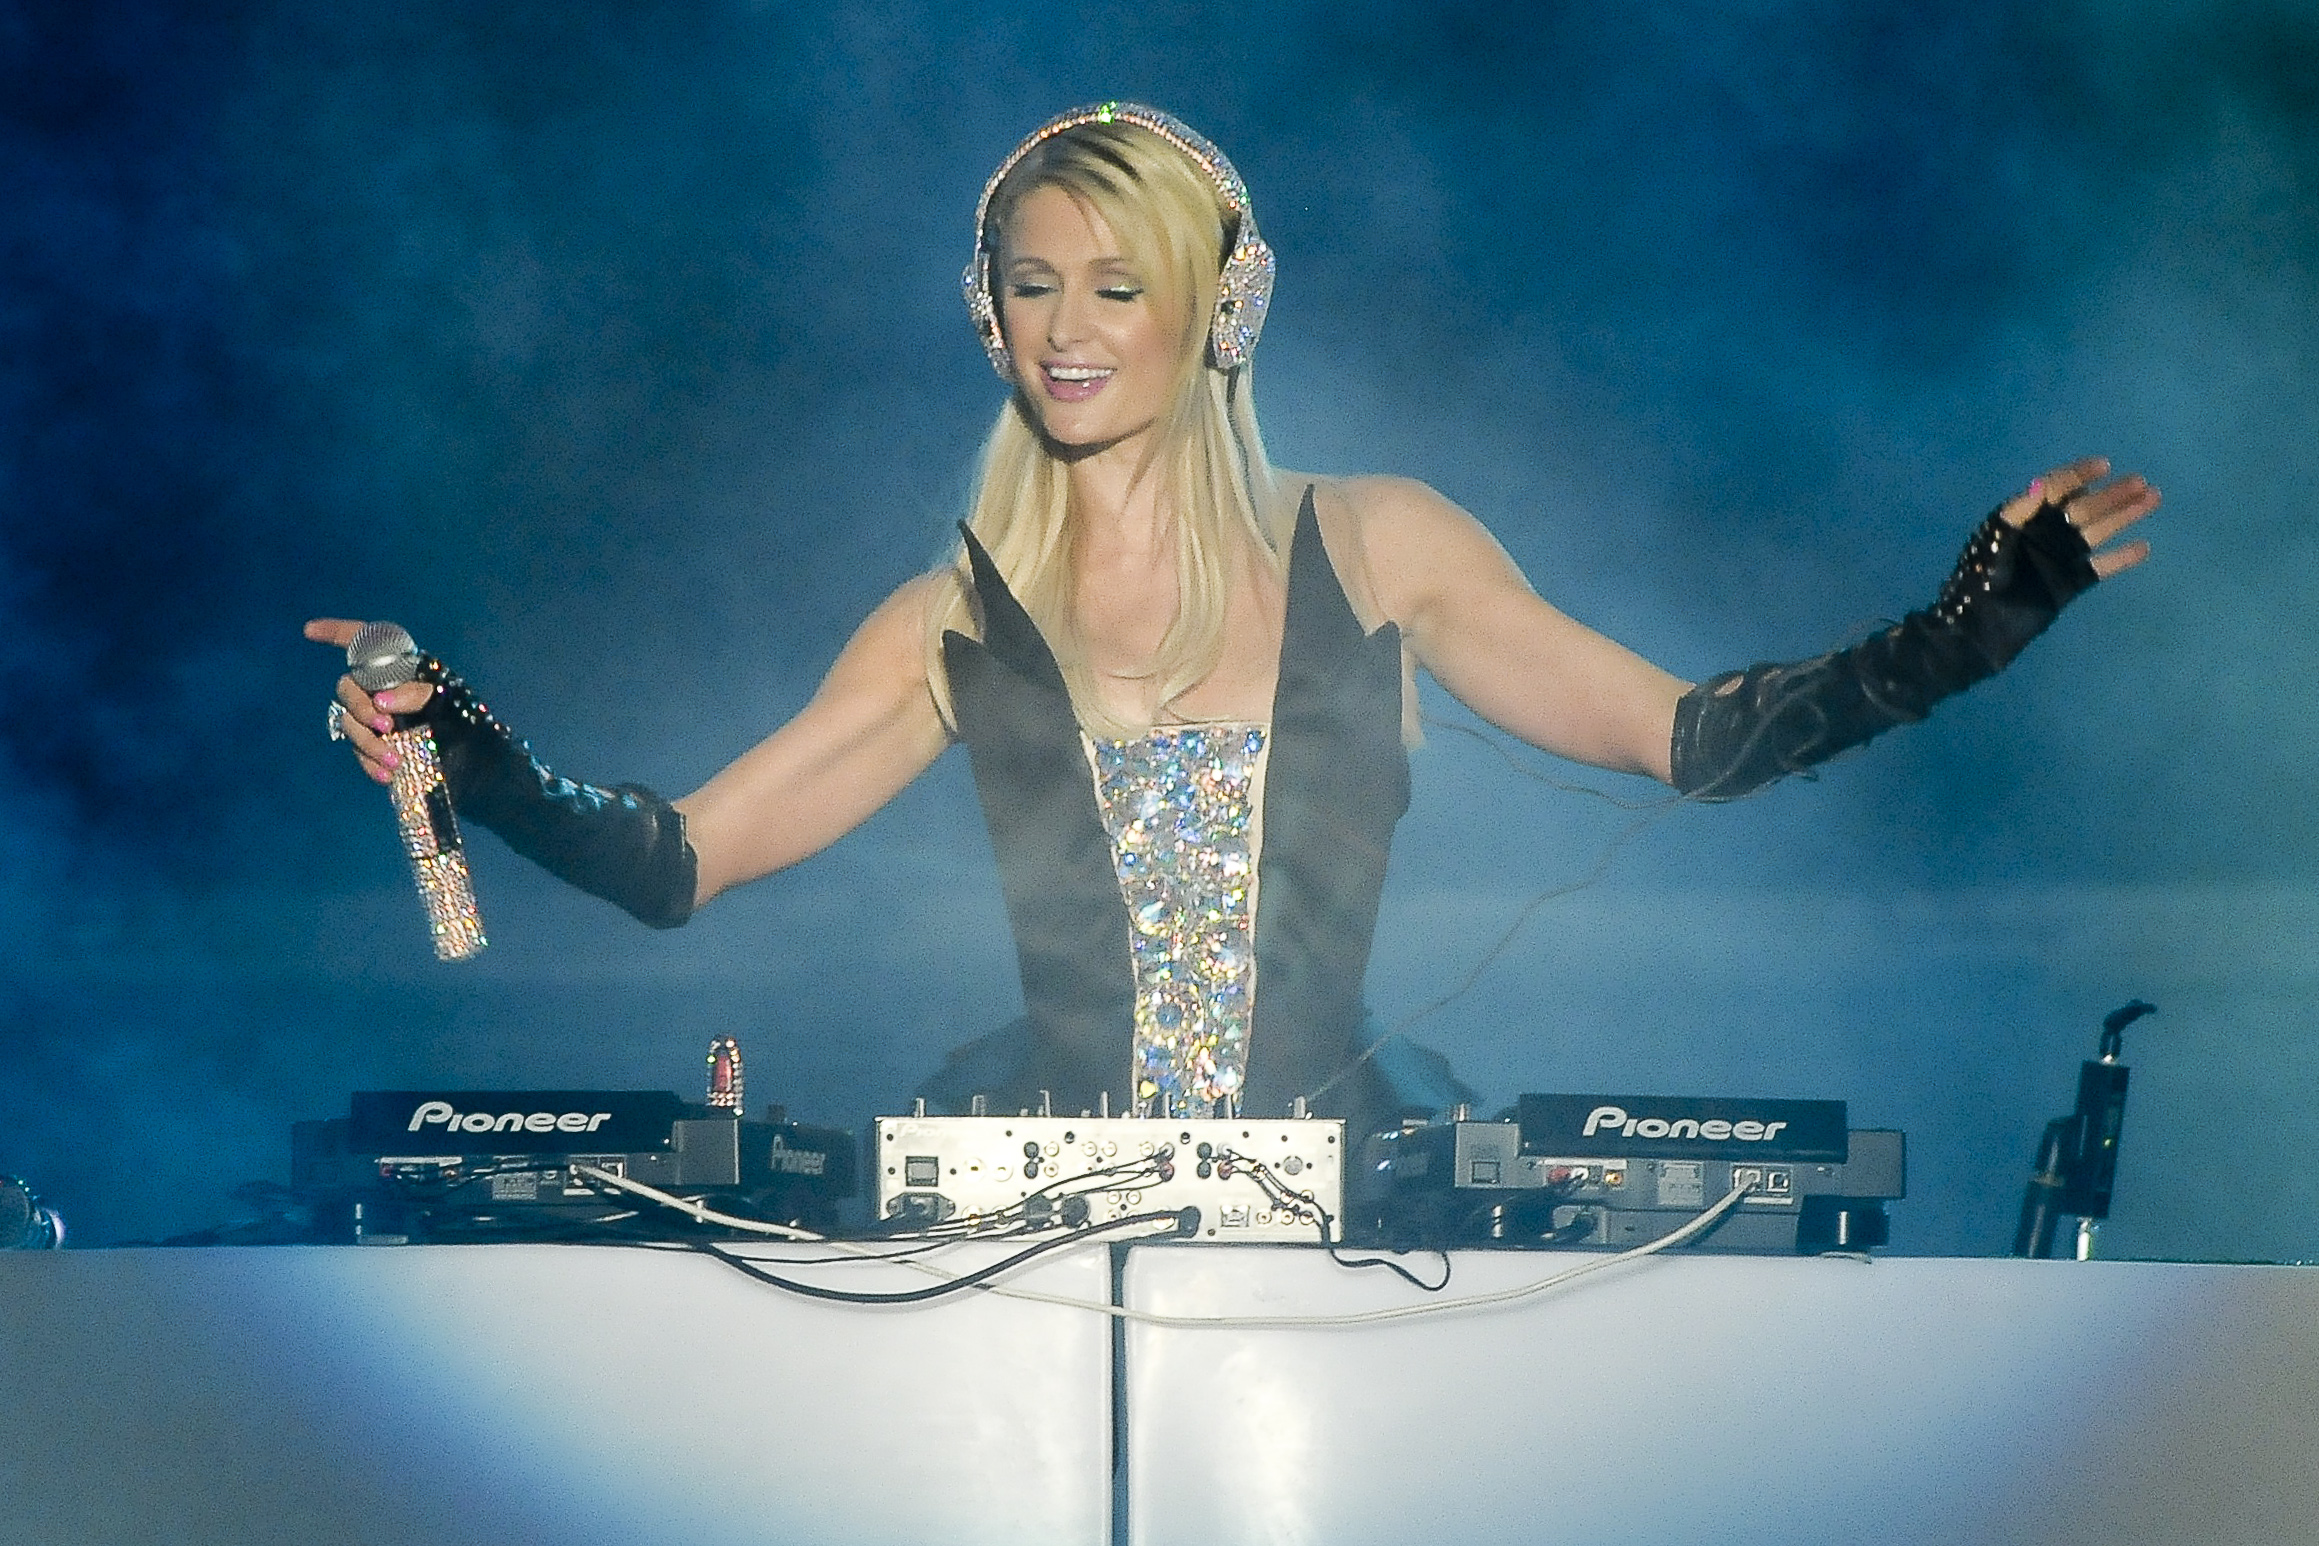 Sao Paulo, Brazil - Paris Hilton showing off her DJ skills at  Pop Music Festival in Sao Paulo.            June 23, 2012,Image: 136870730, License: Rights-managed, Restrictions: NO Latin USA, NO Latin America, Model Release: no, Credit line: GADE / Backgrid USA / Profimedia